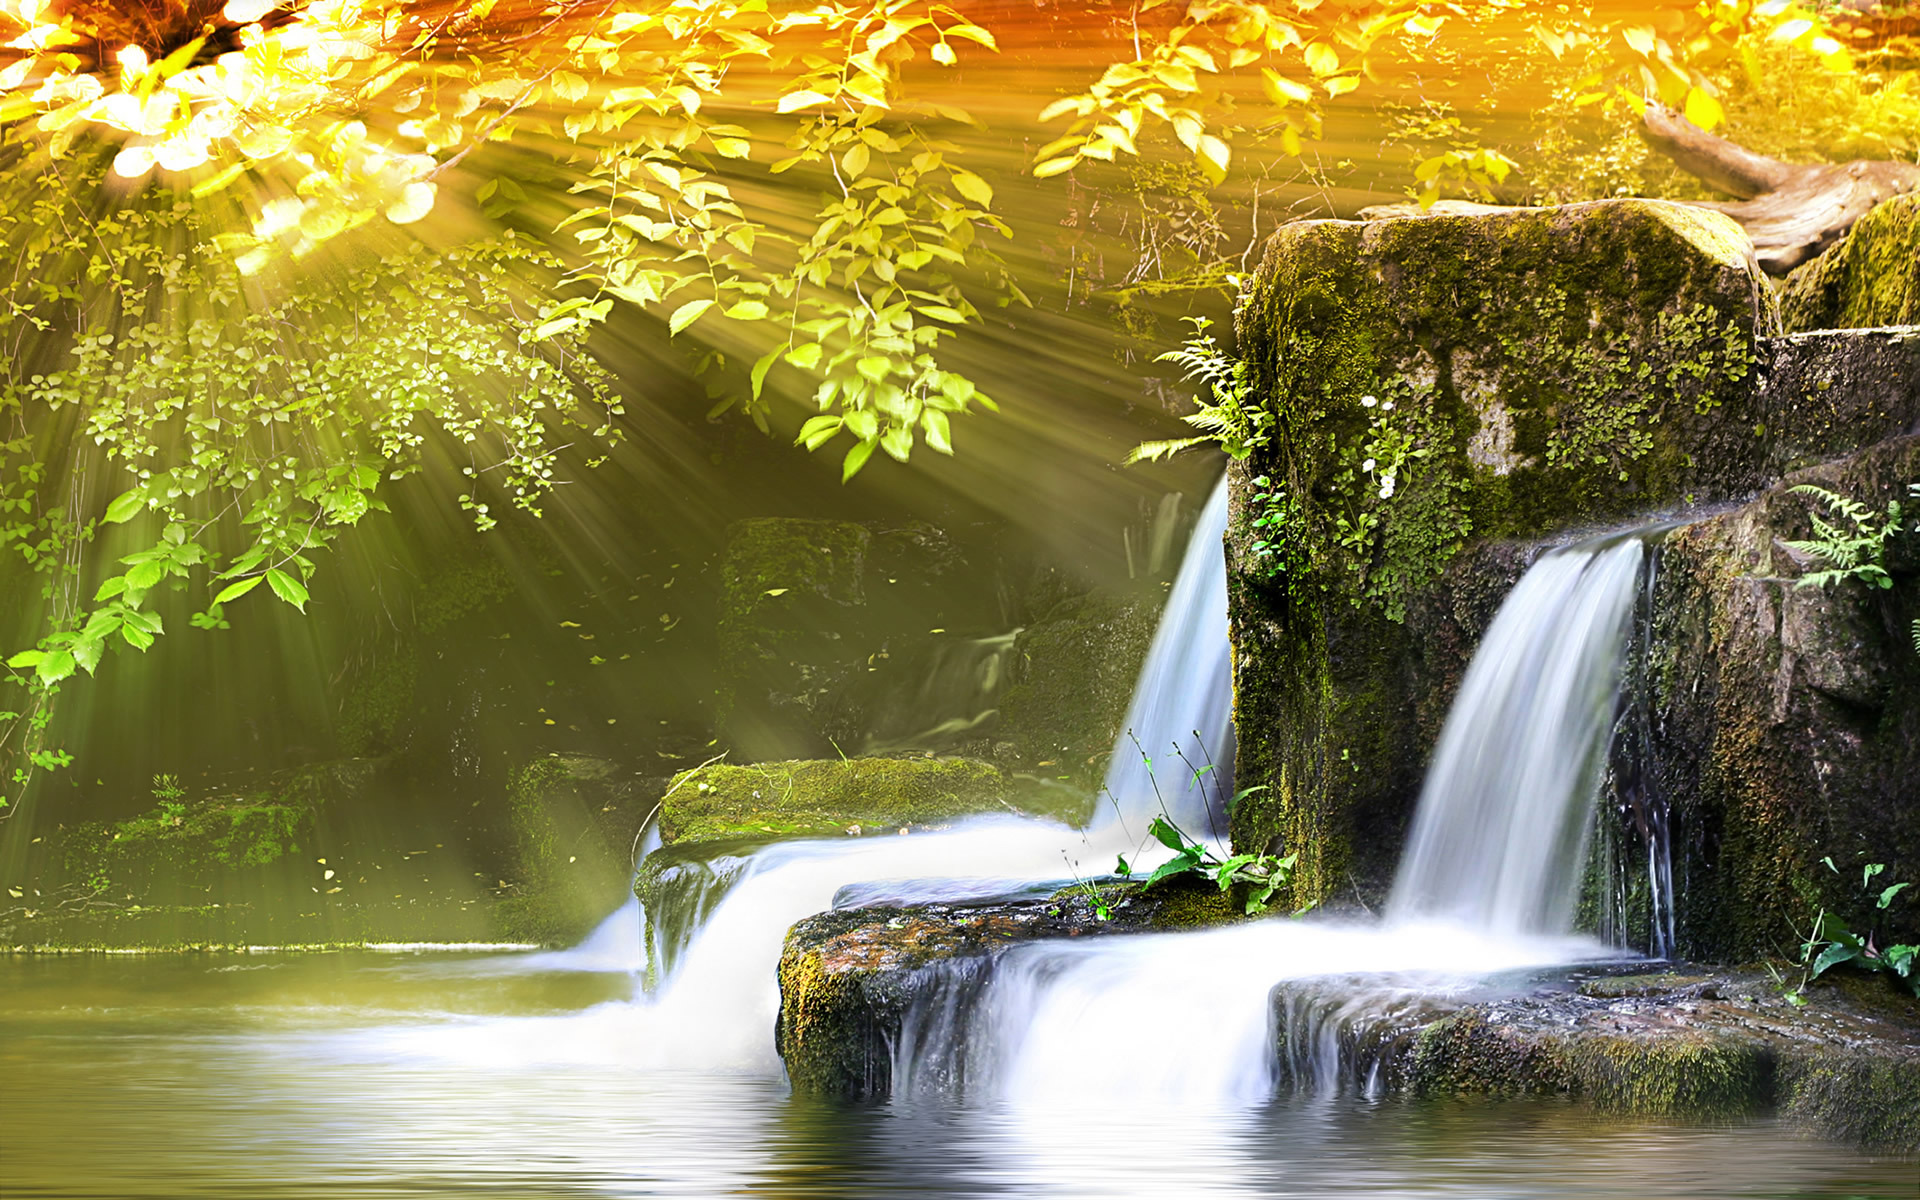 Awesome Nature Wallpapers HD wallpapers   Awesome Nature Wallpapers 1920x1200